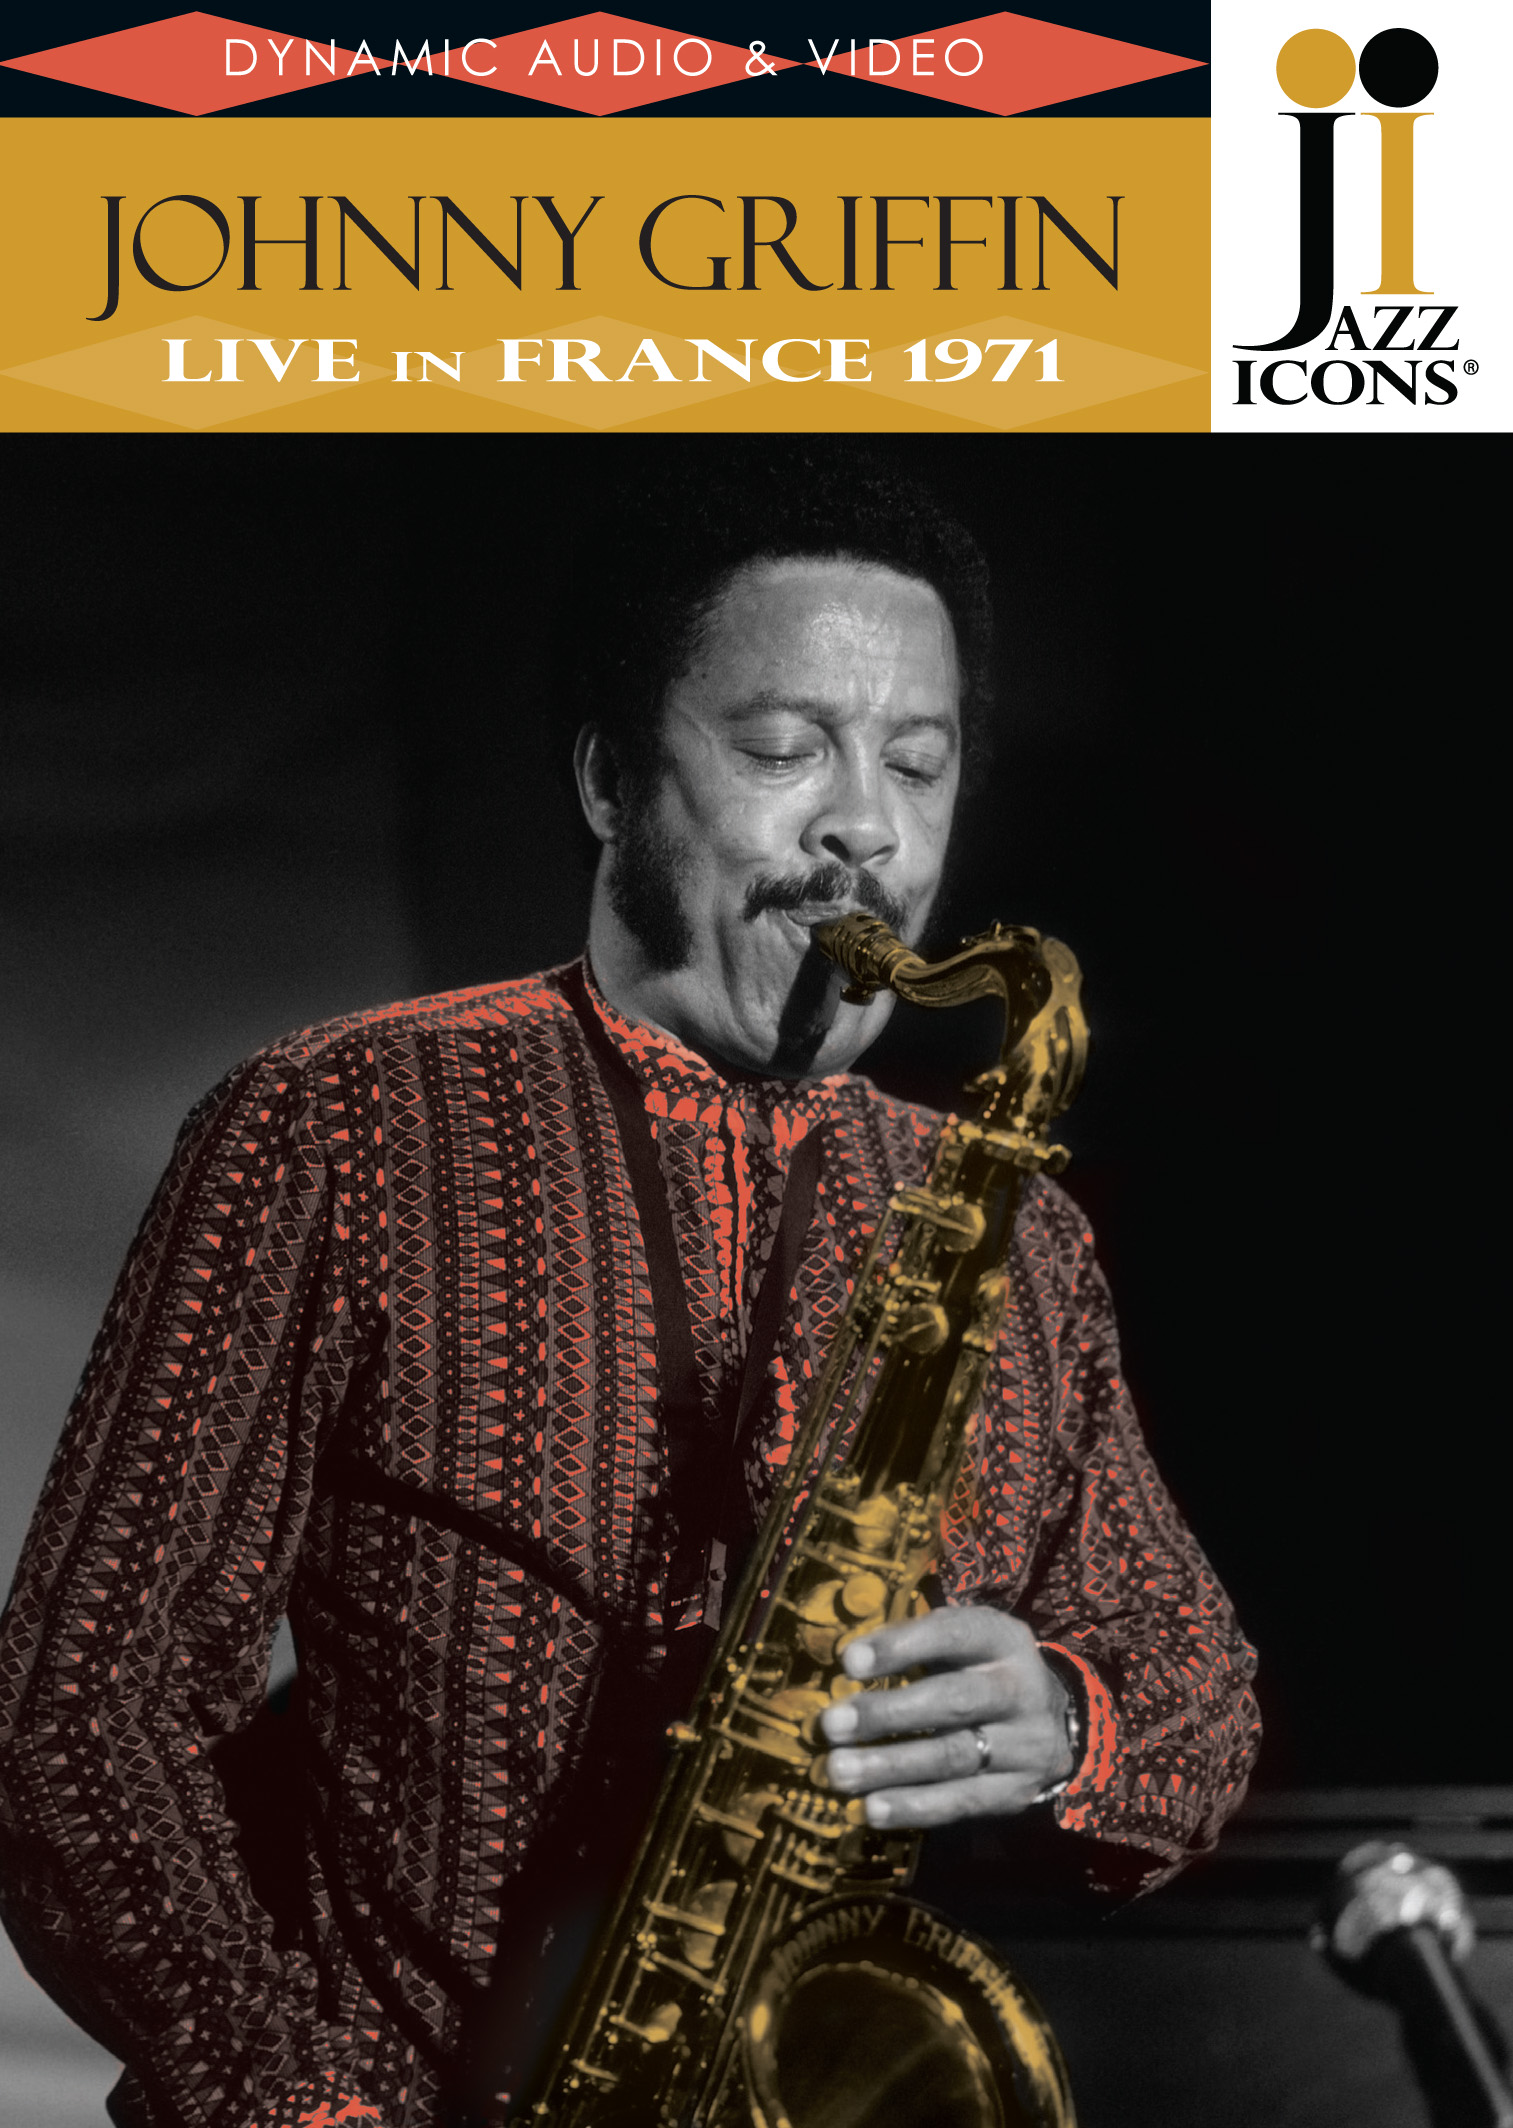 Jazz Icons: Johnny Griffin - Live in France 1971